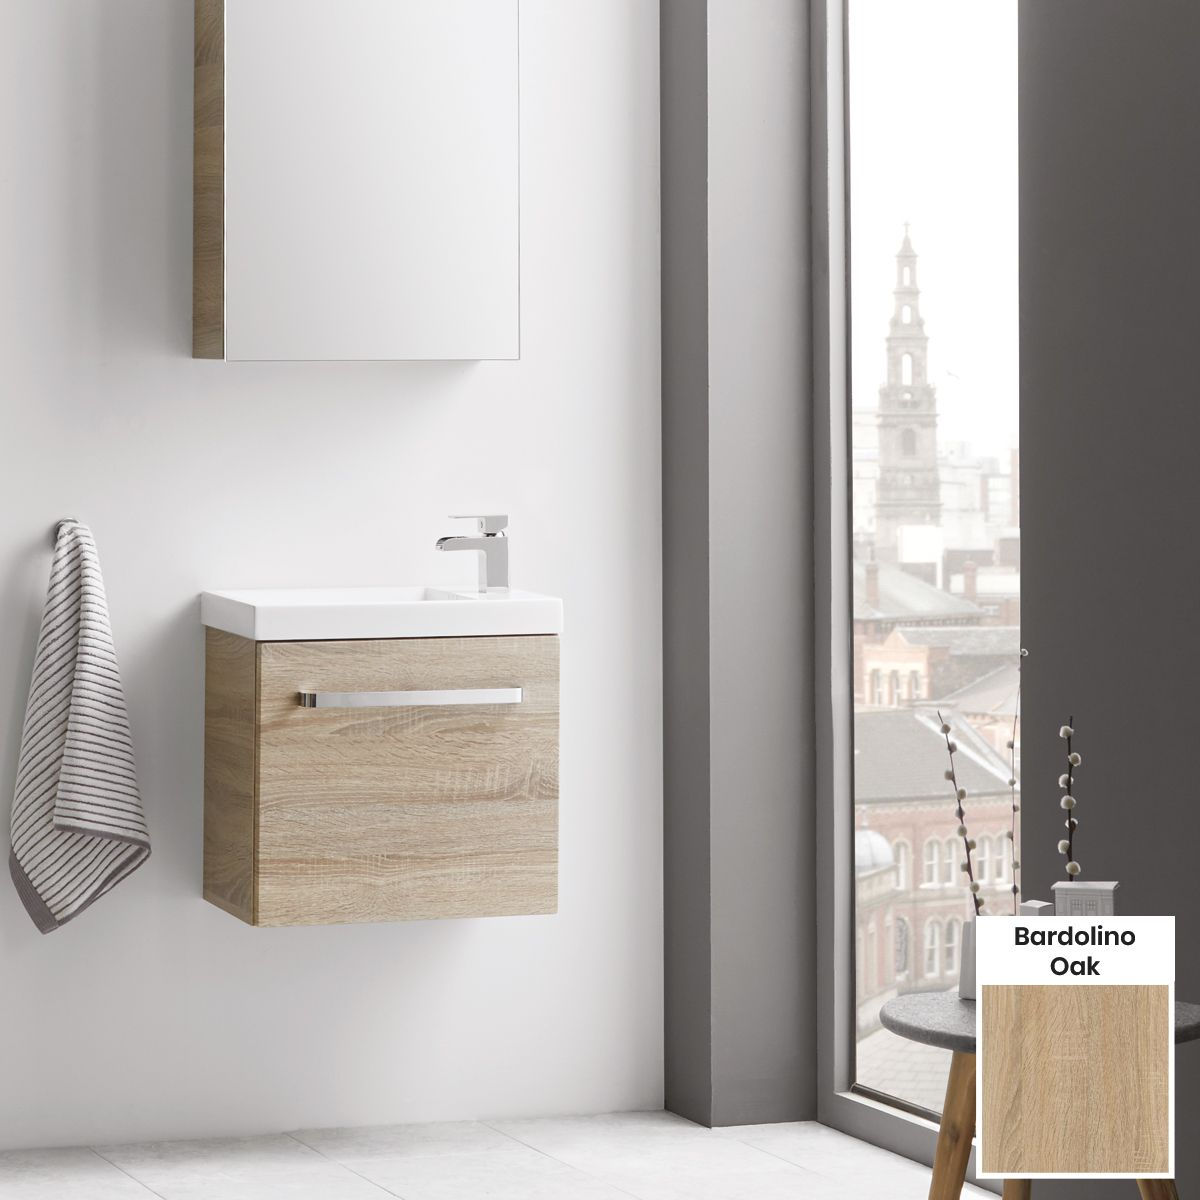 Elation Eko Bardolino Oak Vanity Unit with Groove Door 450mm